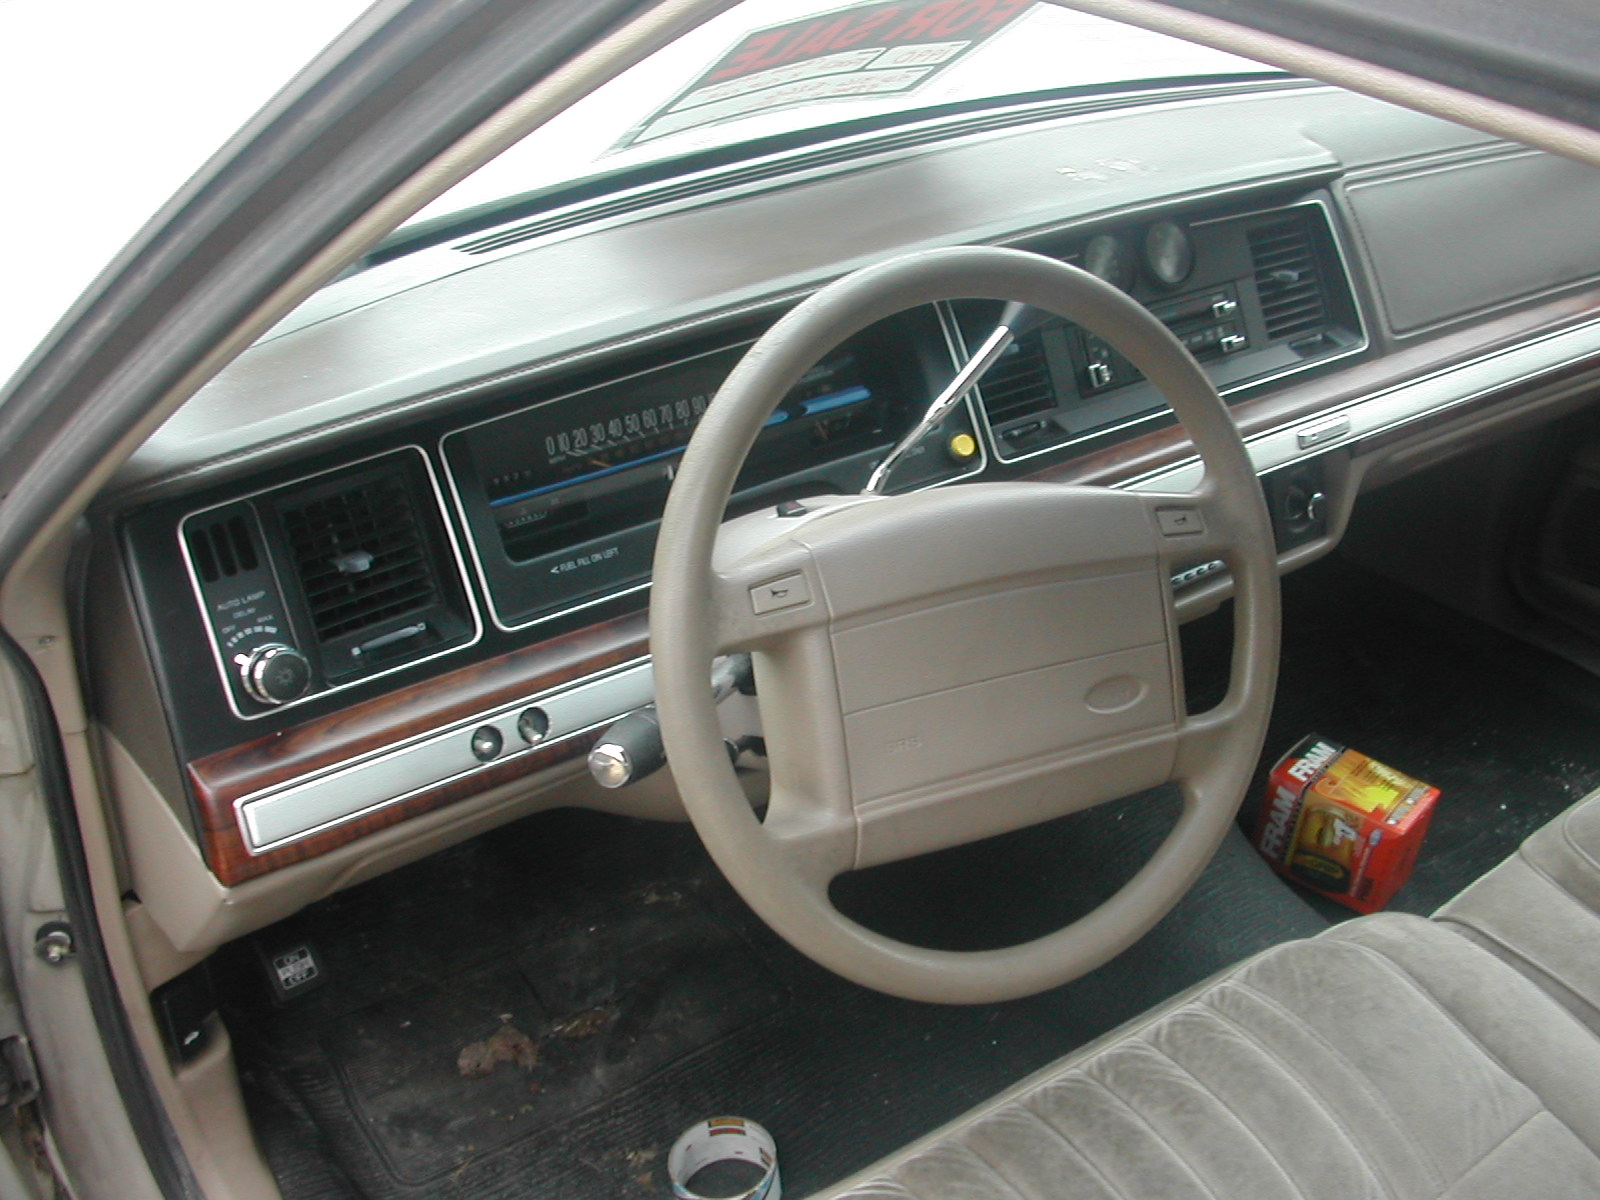 1990 Ford Ltd Crown Victoria Information And Photos Zombiedrive 1970 7